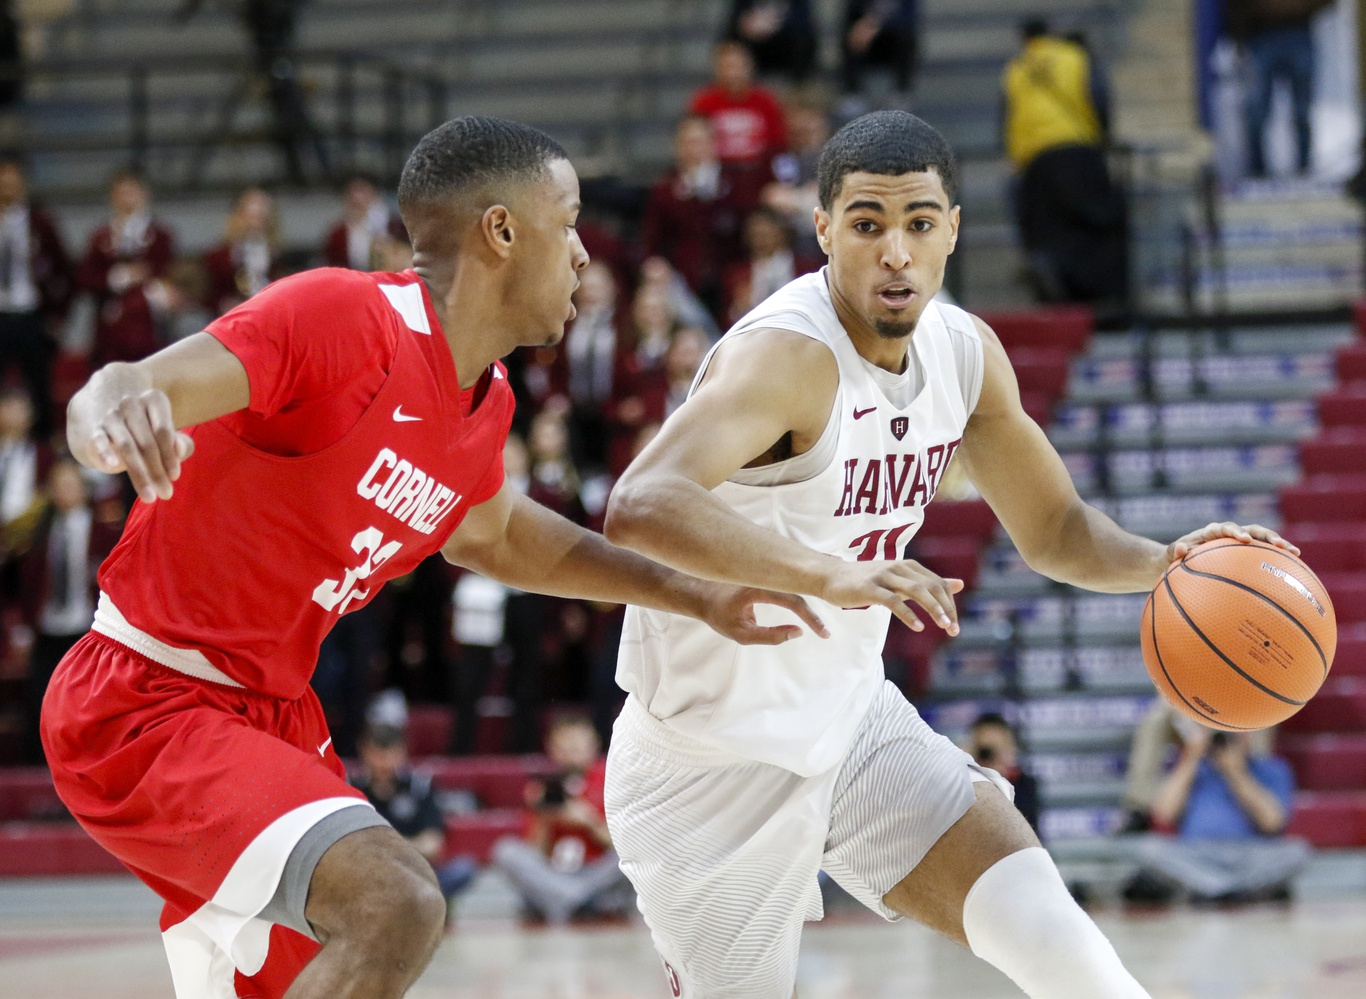 Seth Towns, seen here attacking the basket, was the leading scorer in the semifinal game with 24 points.